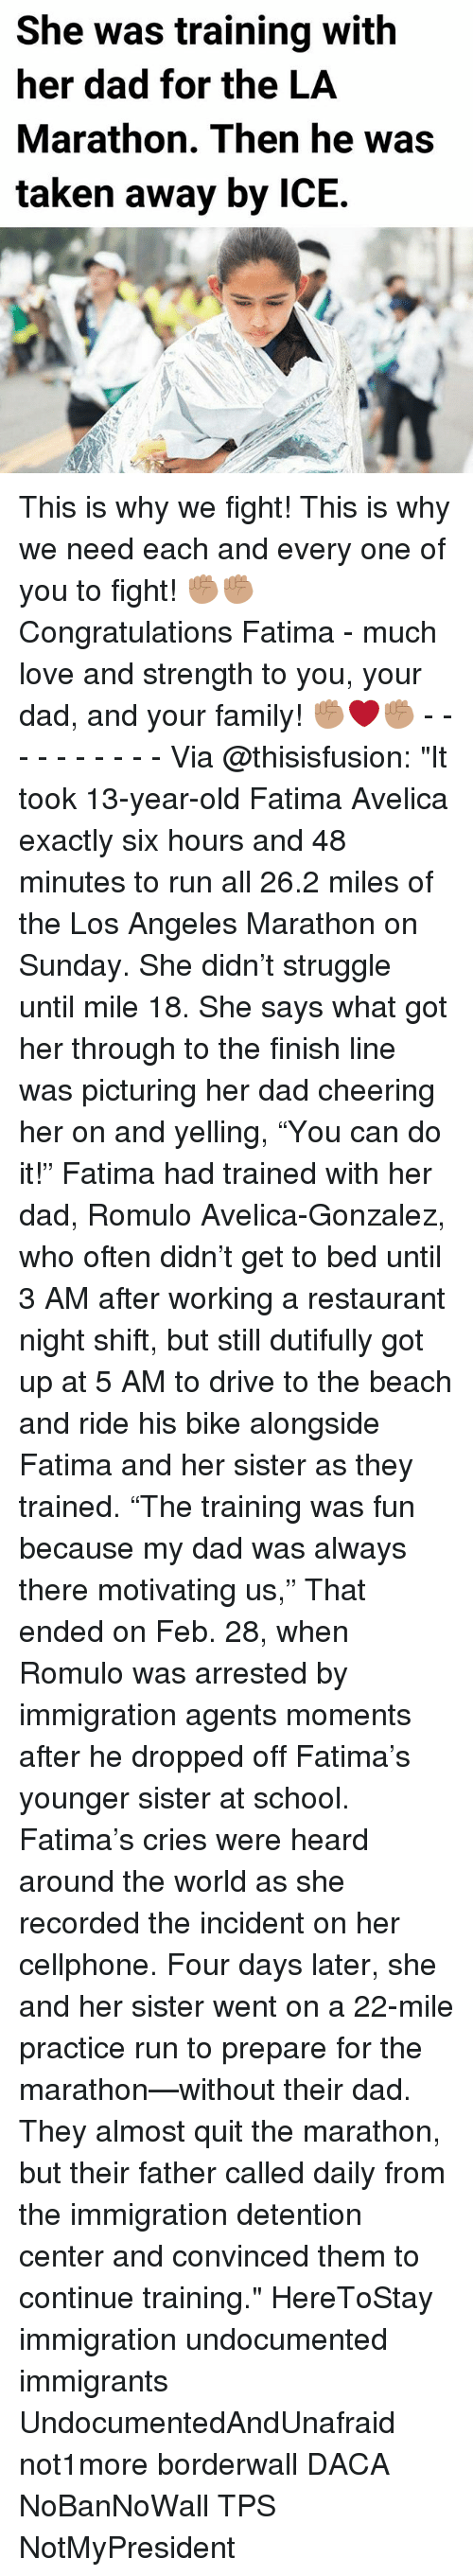 "Memes, 🤖, and Fun: She was training with  her dad for the LA  Marathon. Then he was  taken away by ICE. This is why we fight! This is why we need each and every one of you to fight! ✊🏽✊🏽 Congratulations Fatima - much love and strength to you, your dad, and your family! ✊🏽❤️✊🏽 - - - - - - - - - - Via @thisisfusion: ""It took 13-year-old Fatima Avelica exactly six hours and 48 minutes to run all 26.2 miles of the Los Angeles Marathon on Sunday. She didn't struggle until mile 18. She says what got her through to the finish line was picturing her dad cheering her on and yelling, ""You can do it!"" Fatima had trained with her dad, Romulo Avelica-Gonzalez, who often didn't get to bed until 3 AM after working a restaurant night shift, but still dutifully got up at 5 AM to drive to the beach and ride his bike alongside Fatima and her sister as they trained. ""The training was fun because my dad was always there motivating us,"" That ended on Feb. 28, when Romulo was arrested by immigration agents moments after he dropped off Fatima's younger sister at school. Fatima's cries were heard around the world as she recorded the incident on her cellphone. Four days later, she and her sister went on a 22-mile practice run to prepare for the marathon—without their dad. They almost quit the marathon, but their father called daily from the immigration detention center and convinced them to continue training."" HereToStay immigration undocumented immigrants UndocumentedAndUnafraid not1more borderwall DACA NoBanNoWall TPS NotMyPresident"